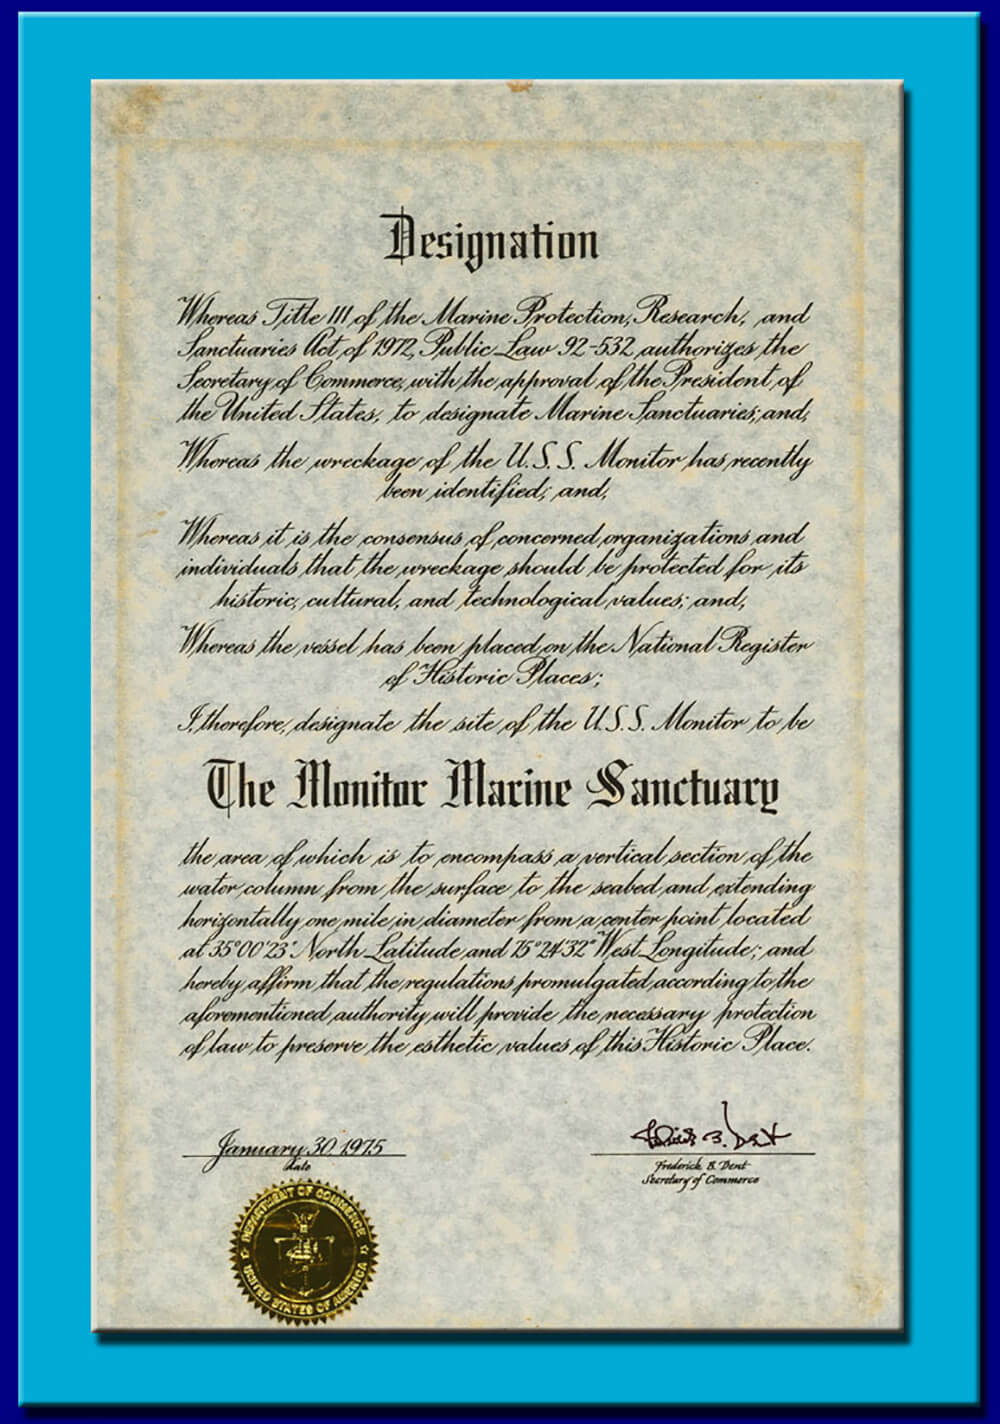 the document designating the monitor as a national marine sanctuary